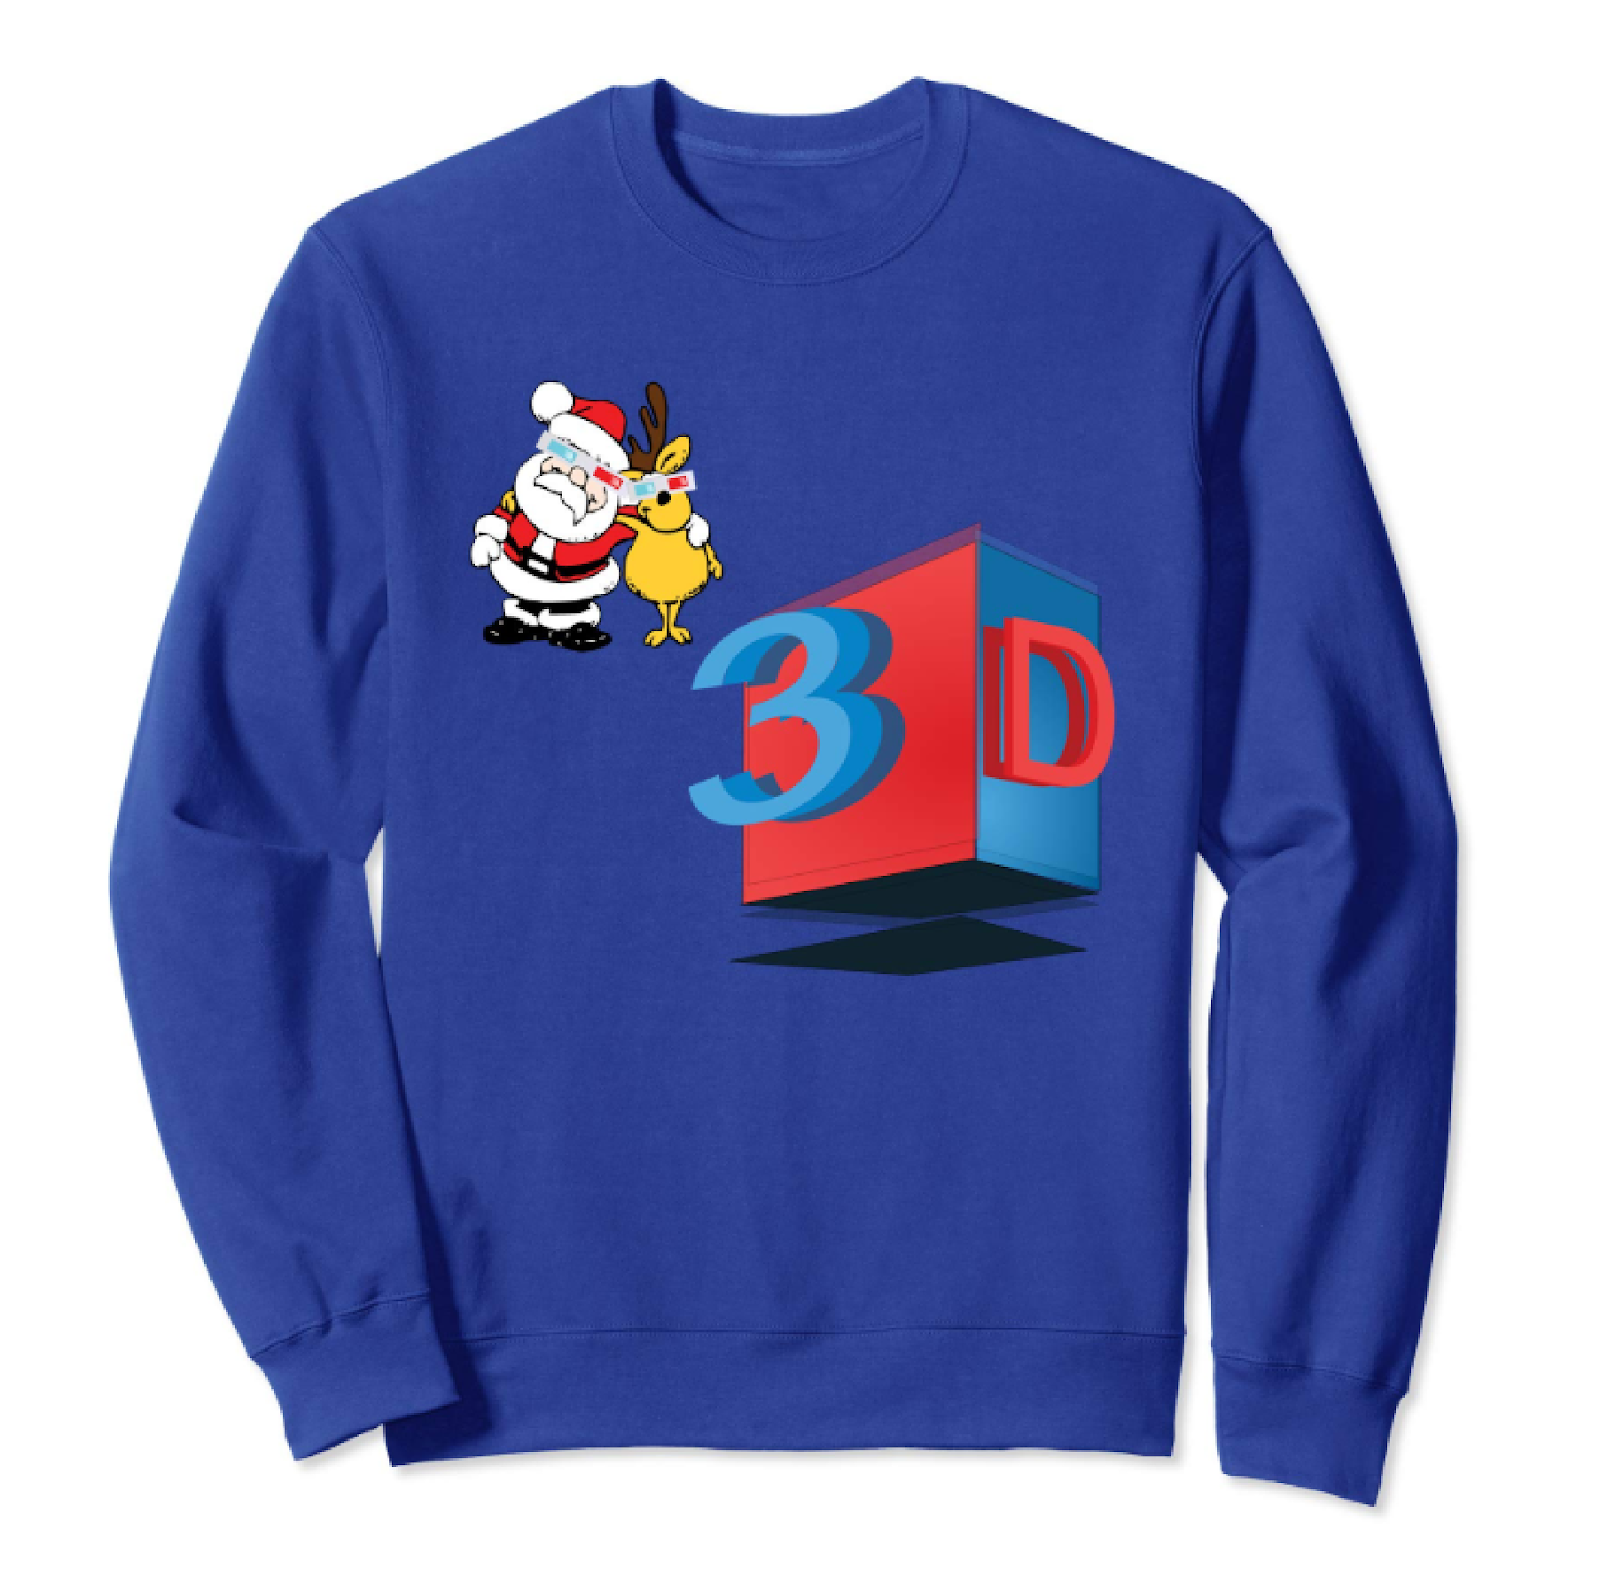 5c3dbef6a378 santa-claus-rudolph-pullover-funny-3d-christmas-sweatshirt